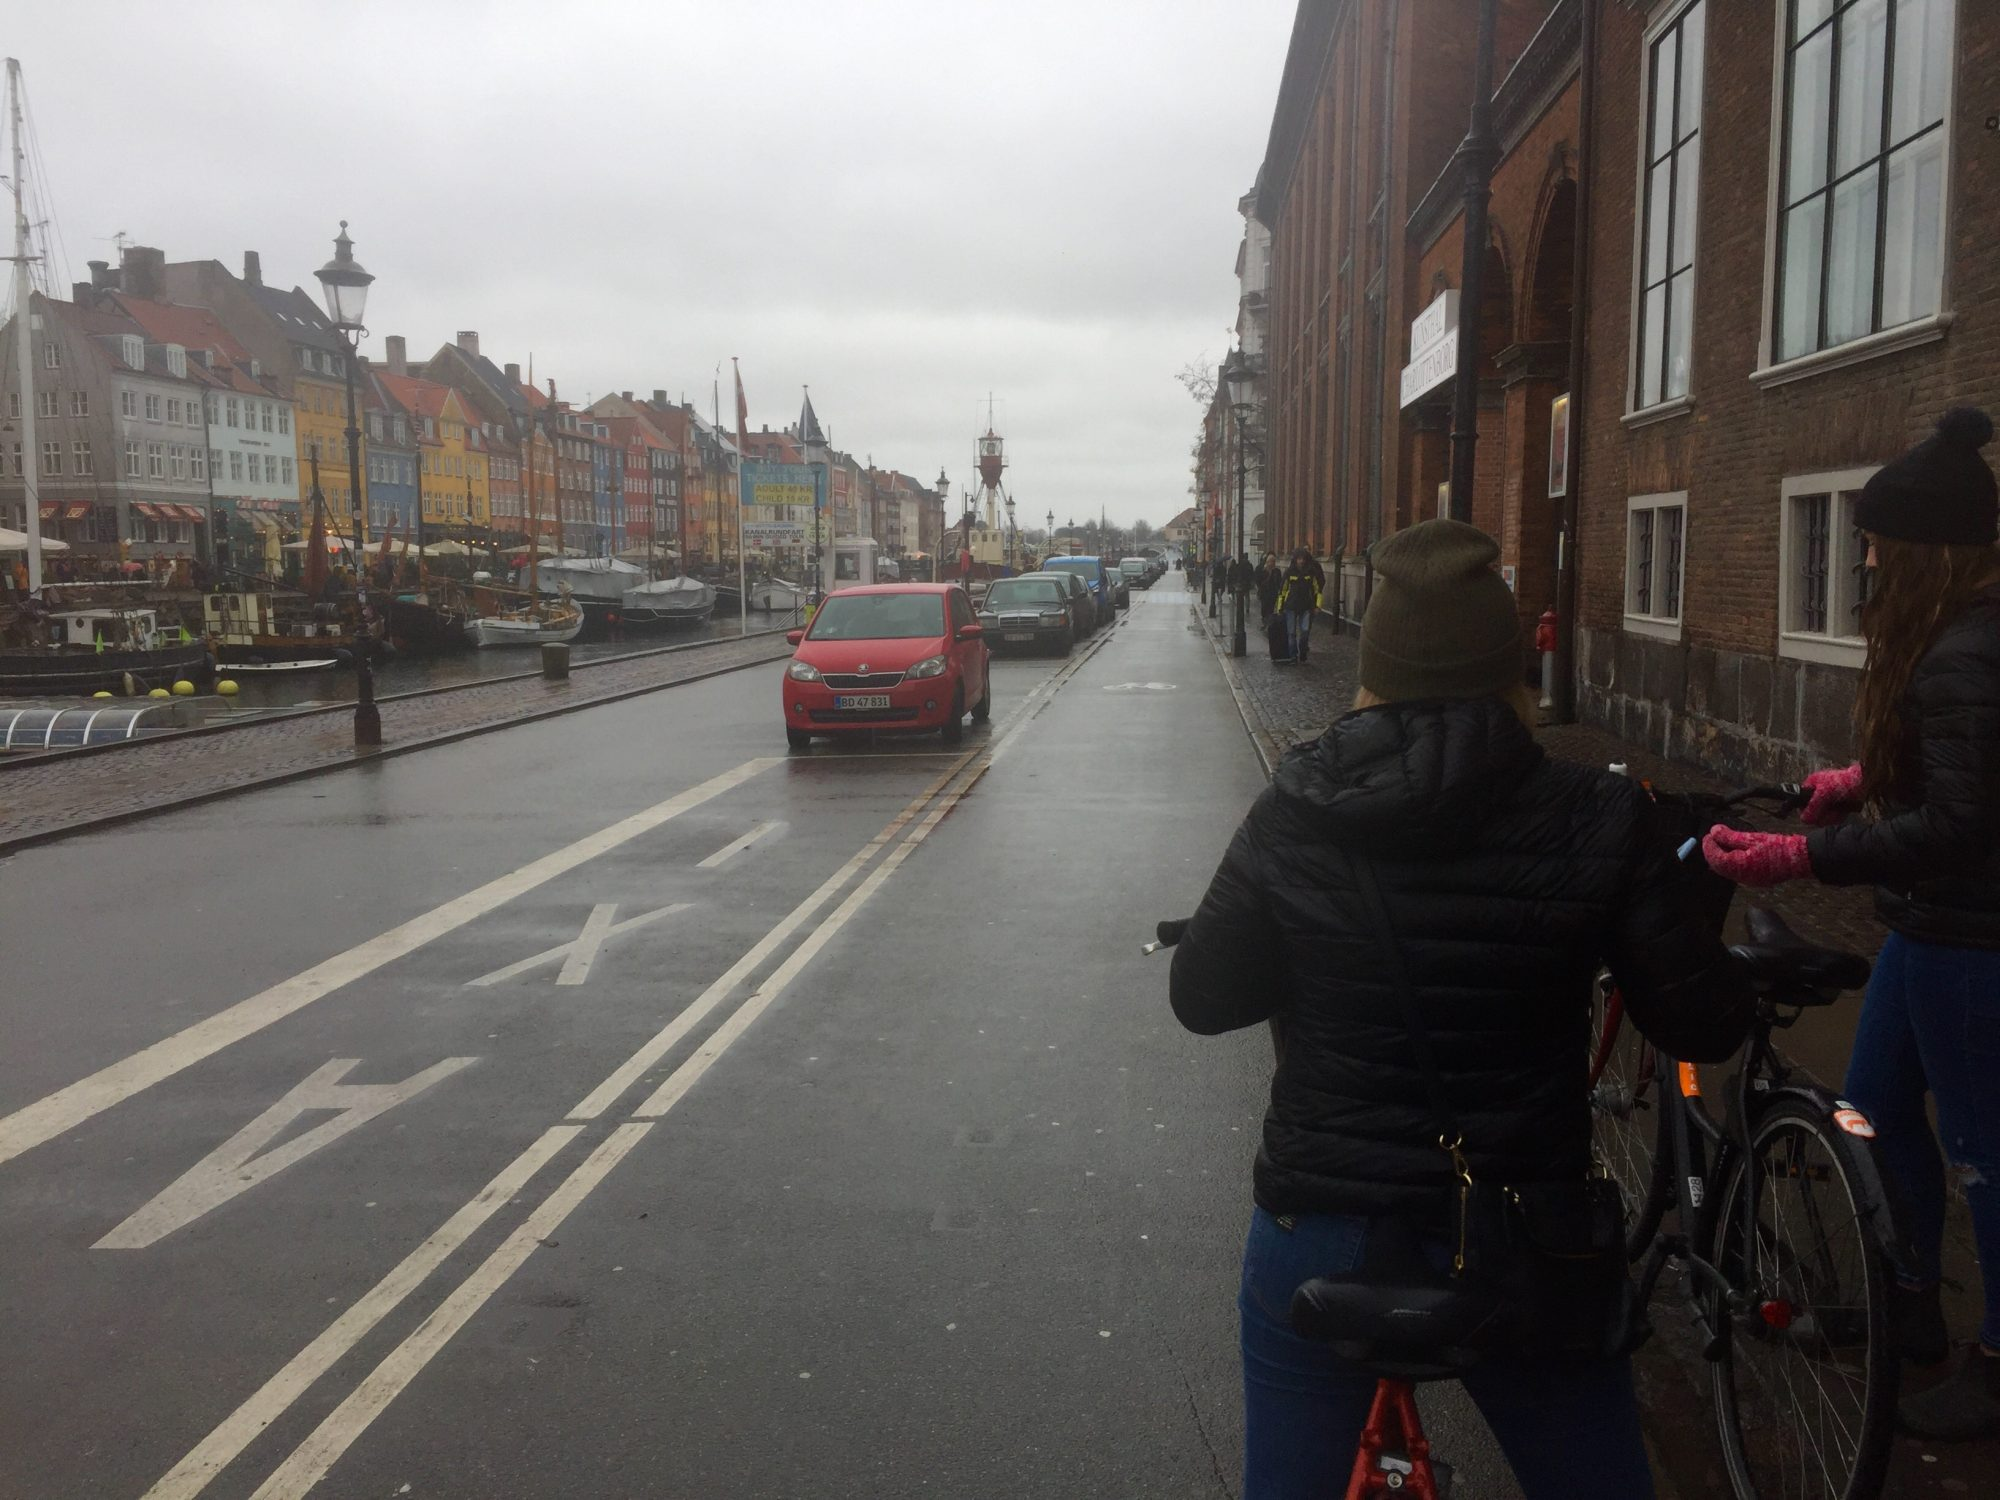 Nyhavn, Copenhagen. We chose the coldest and rainiest day to bike around Copenhagen, but nevertheless I think biking is the best way to see Copenhagen!